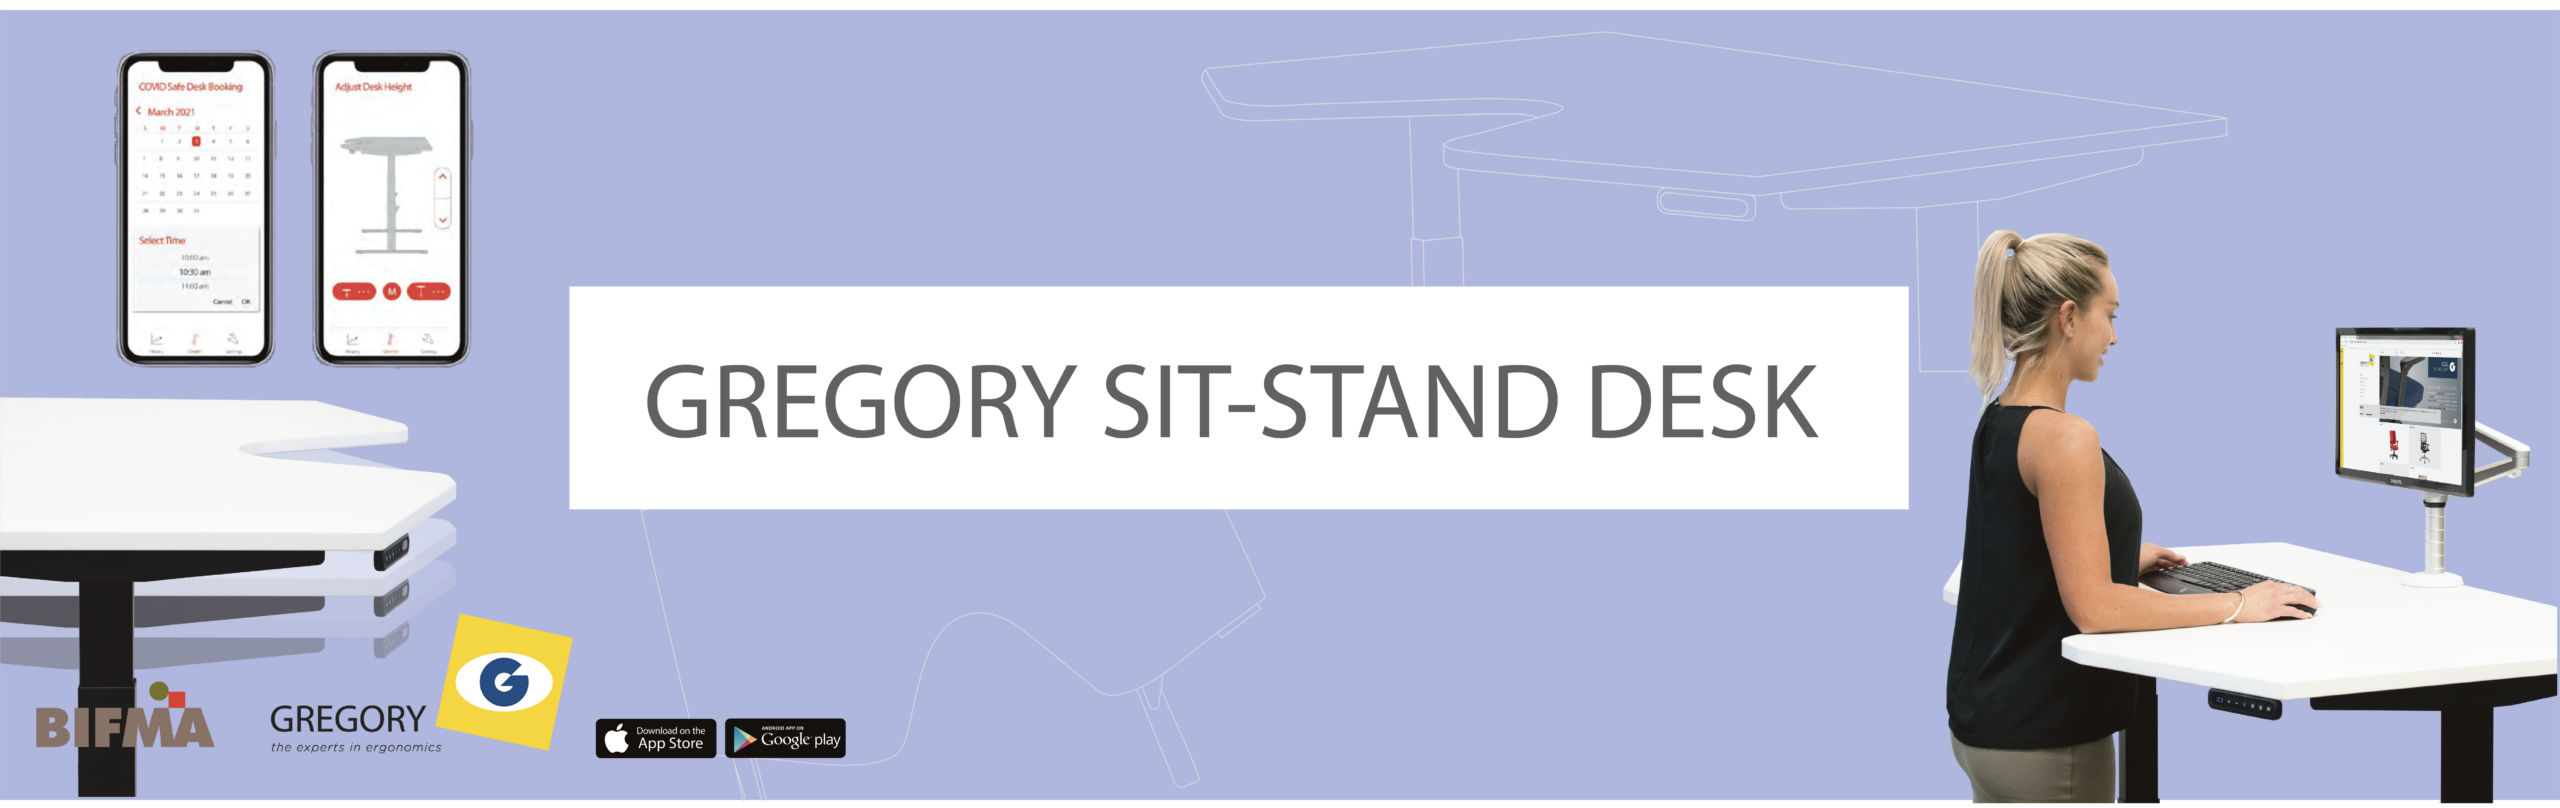 Gregory sit stand desk